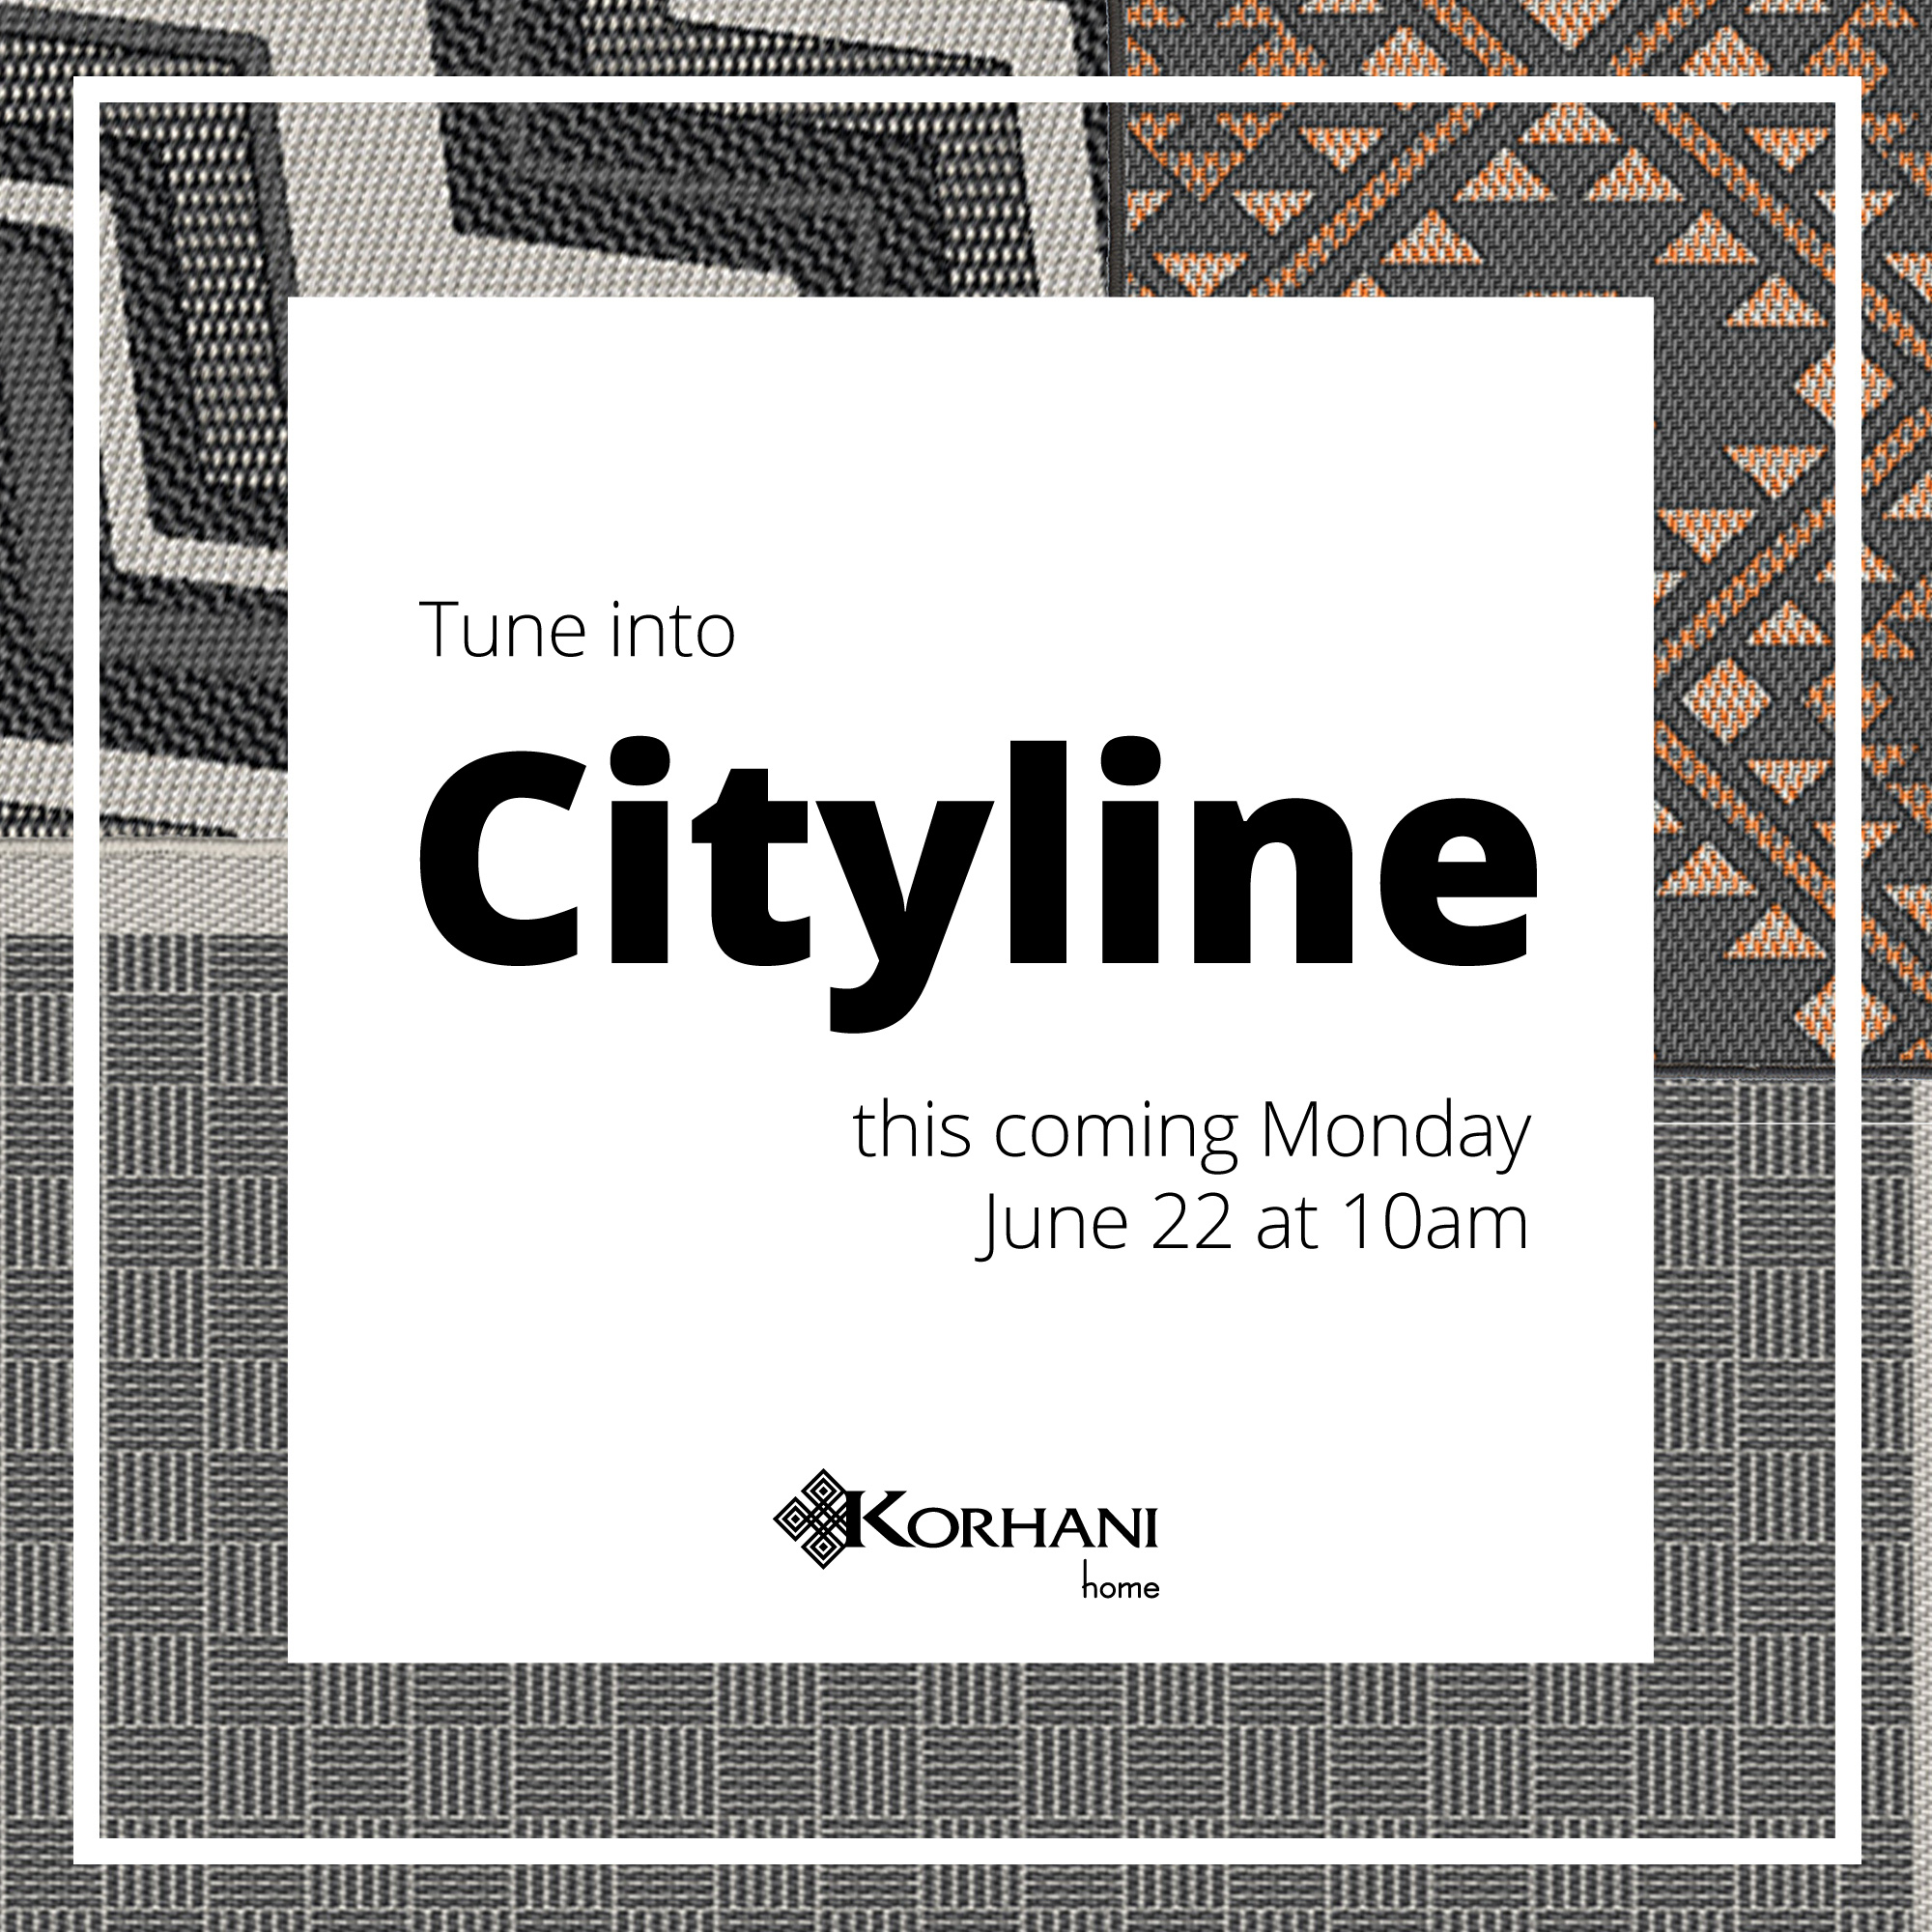 Tune into Cityline this coming Monday